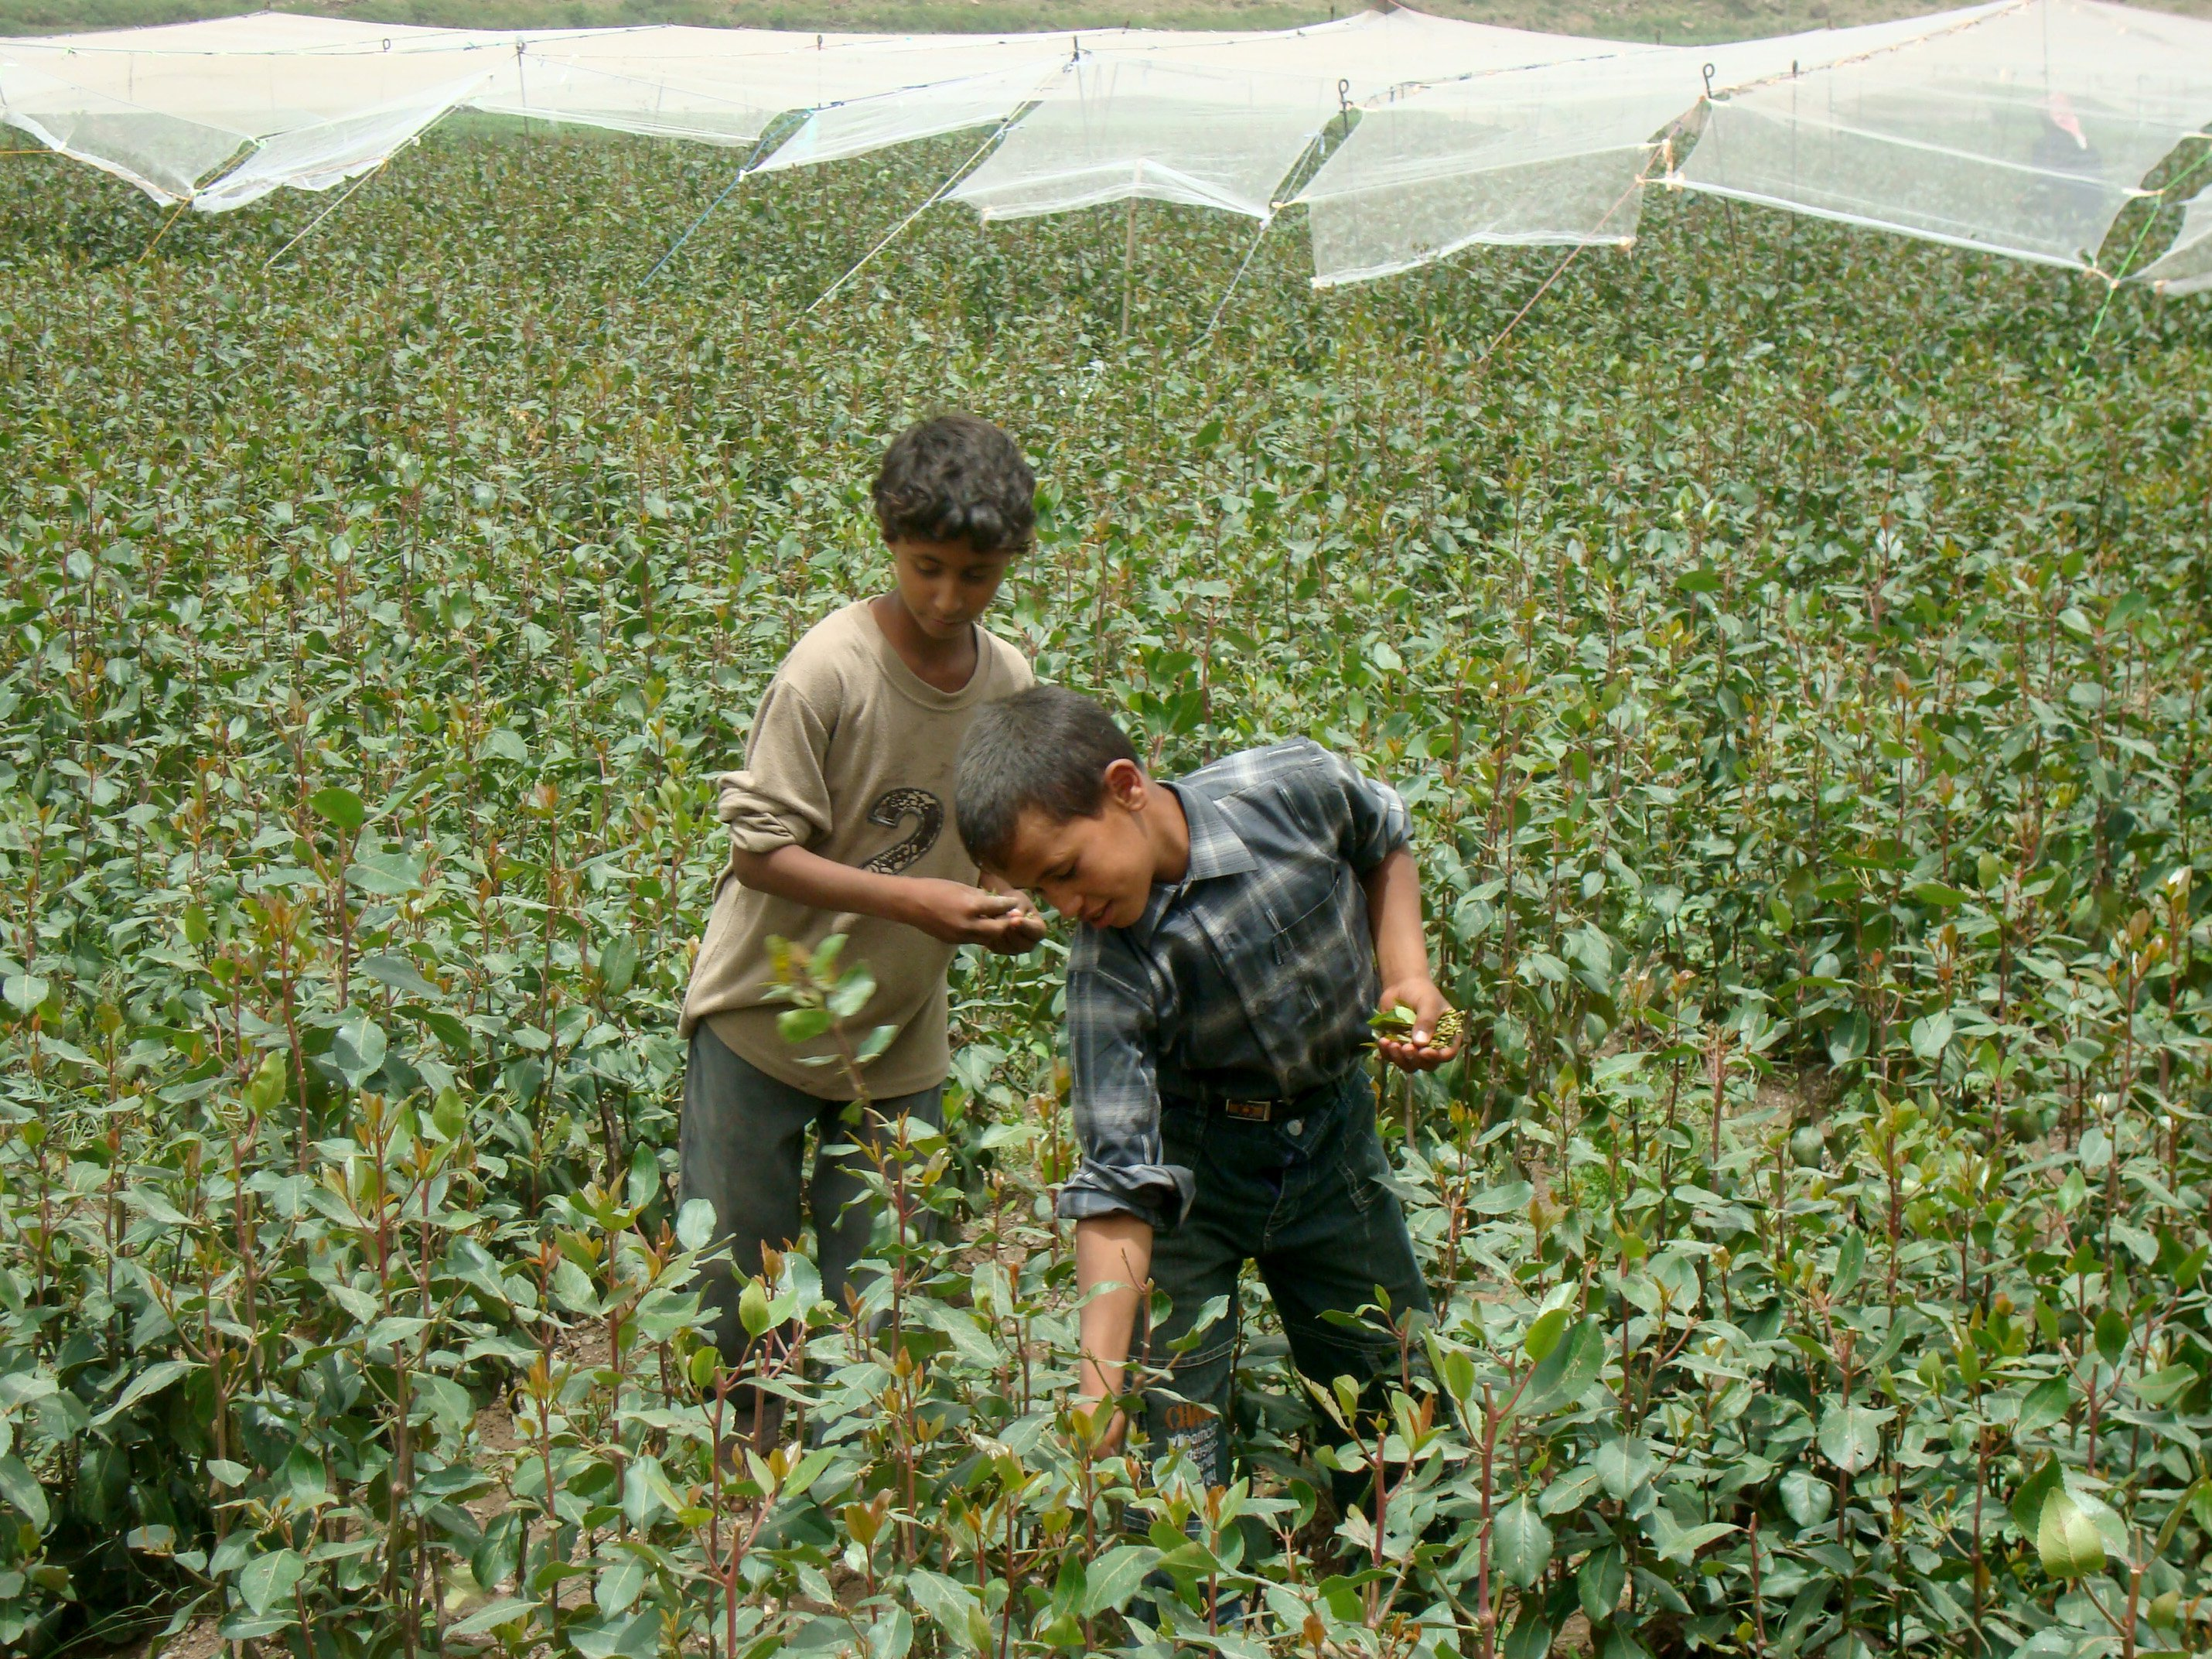 Child laborers harvesting qat leaves in Hajja governorate